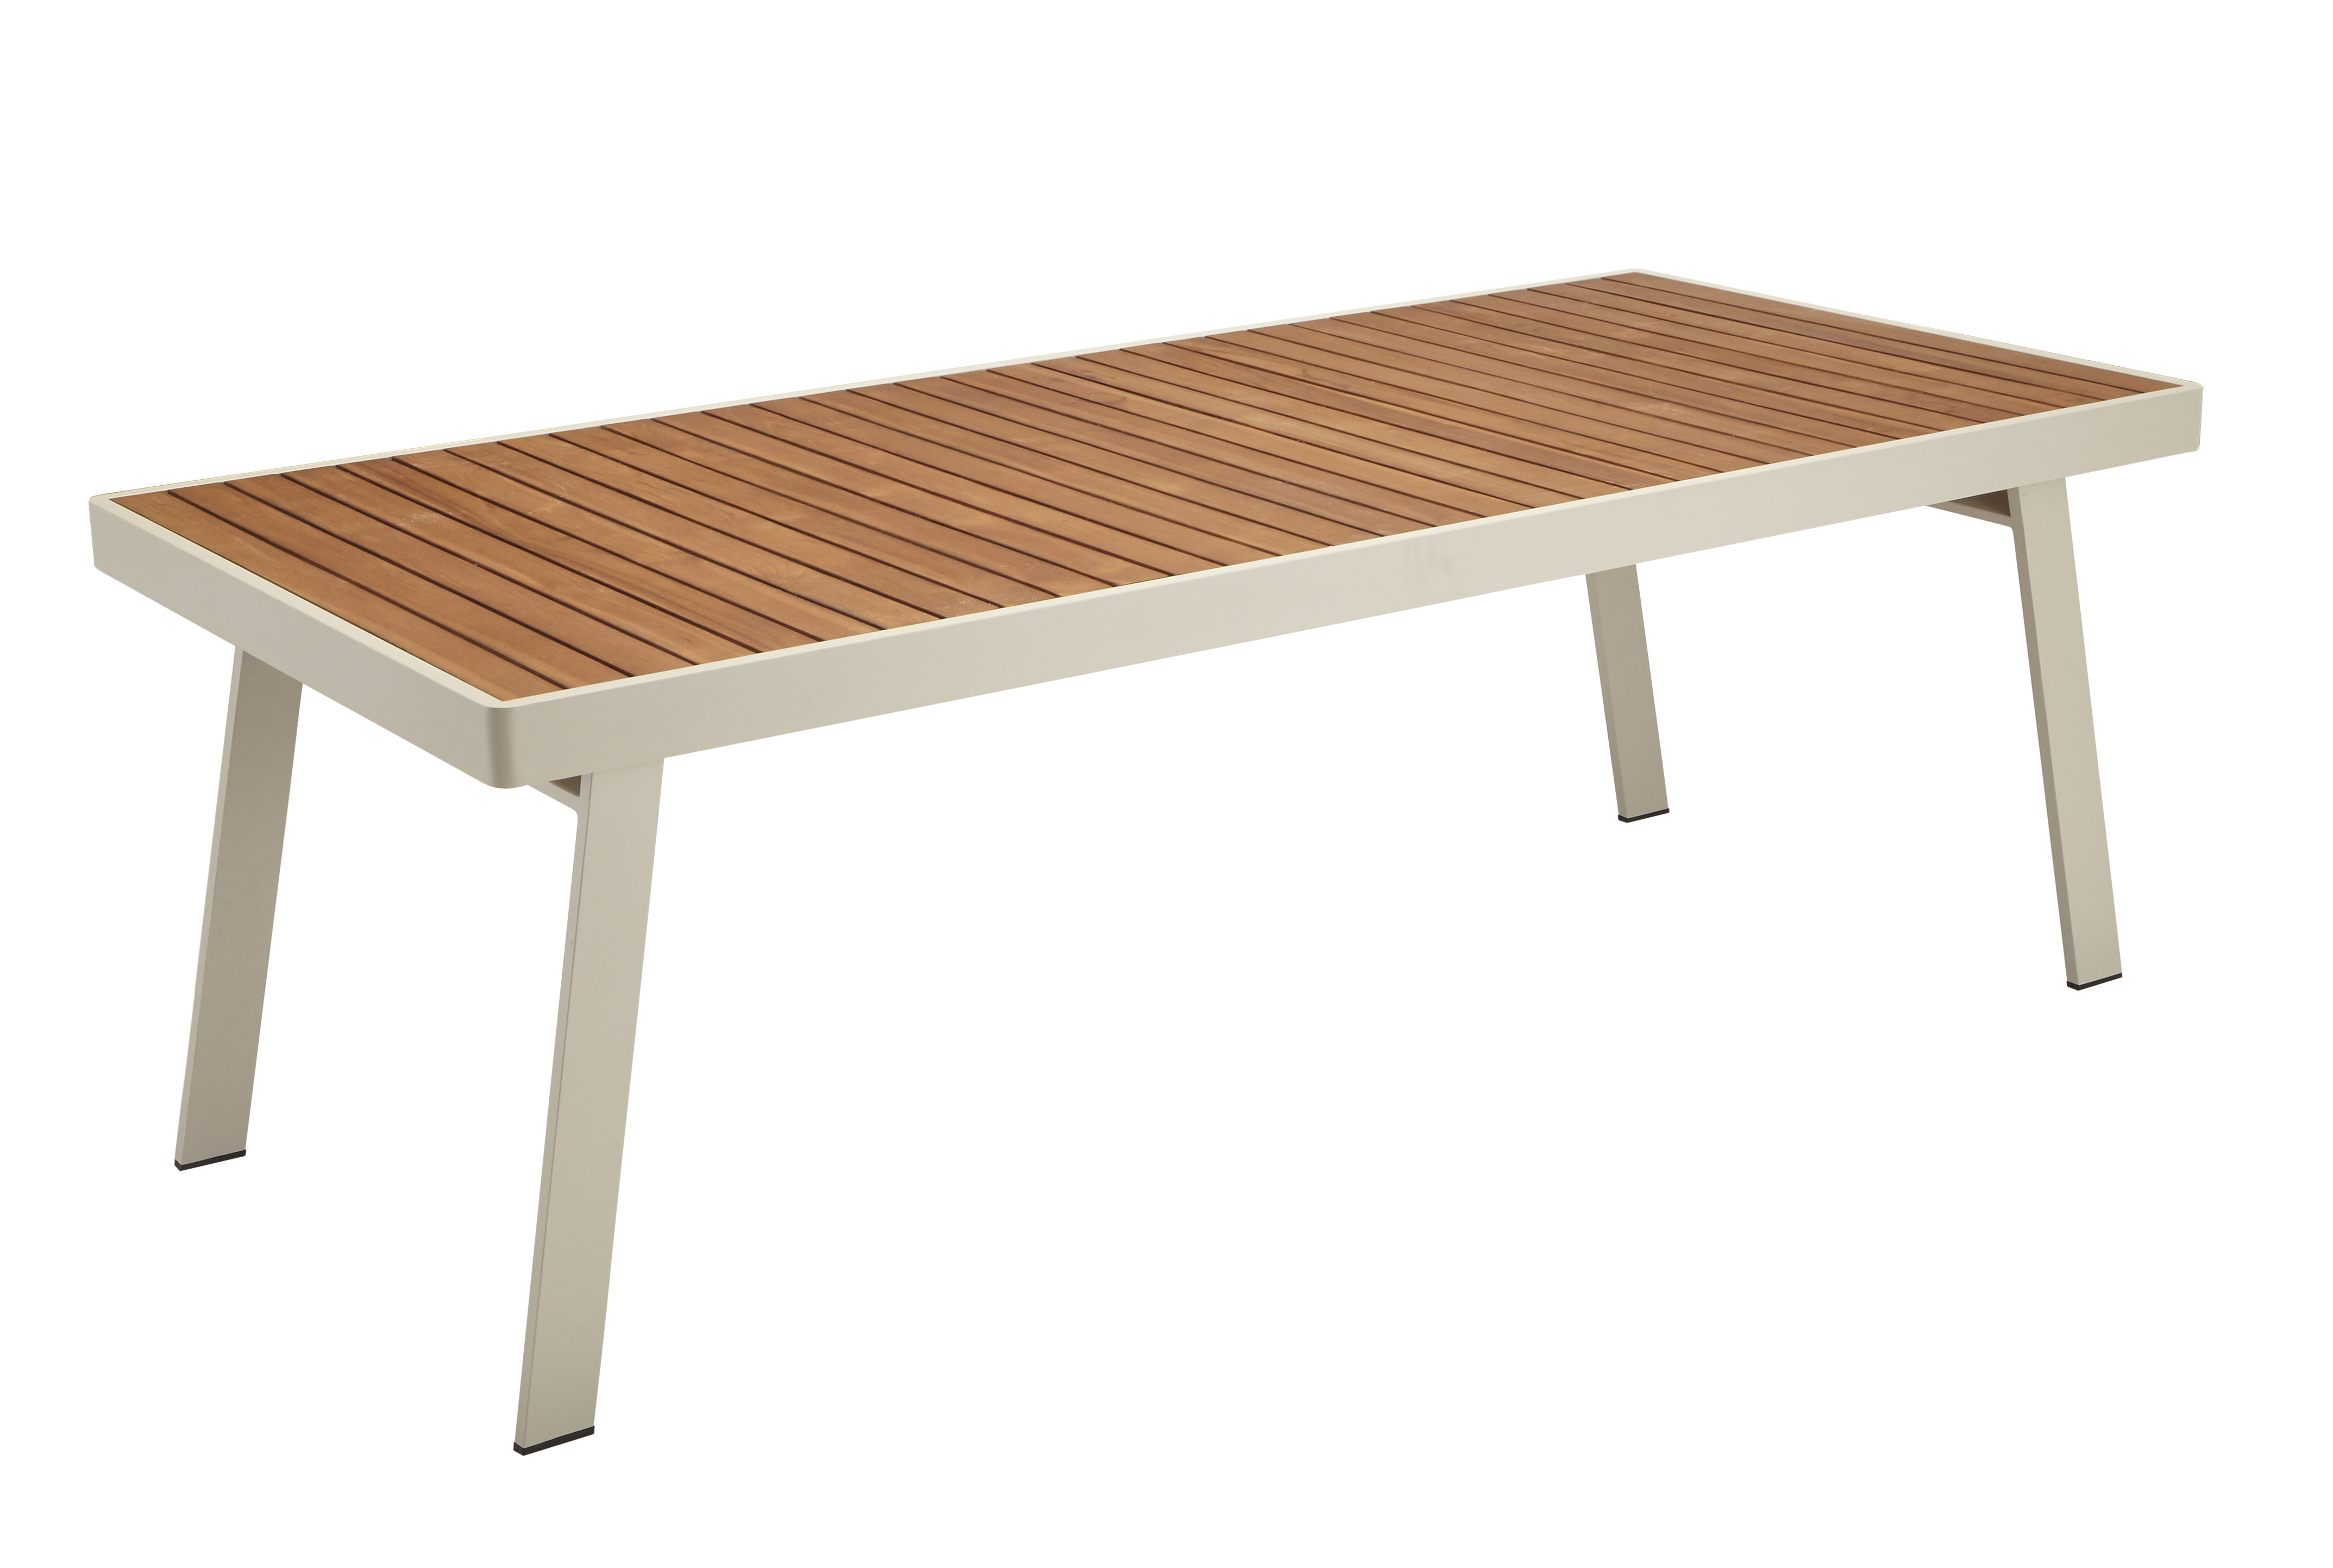 Table De Jardin En Teck Carrefour Table Sola Rectangulaire Beige 680177